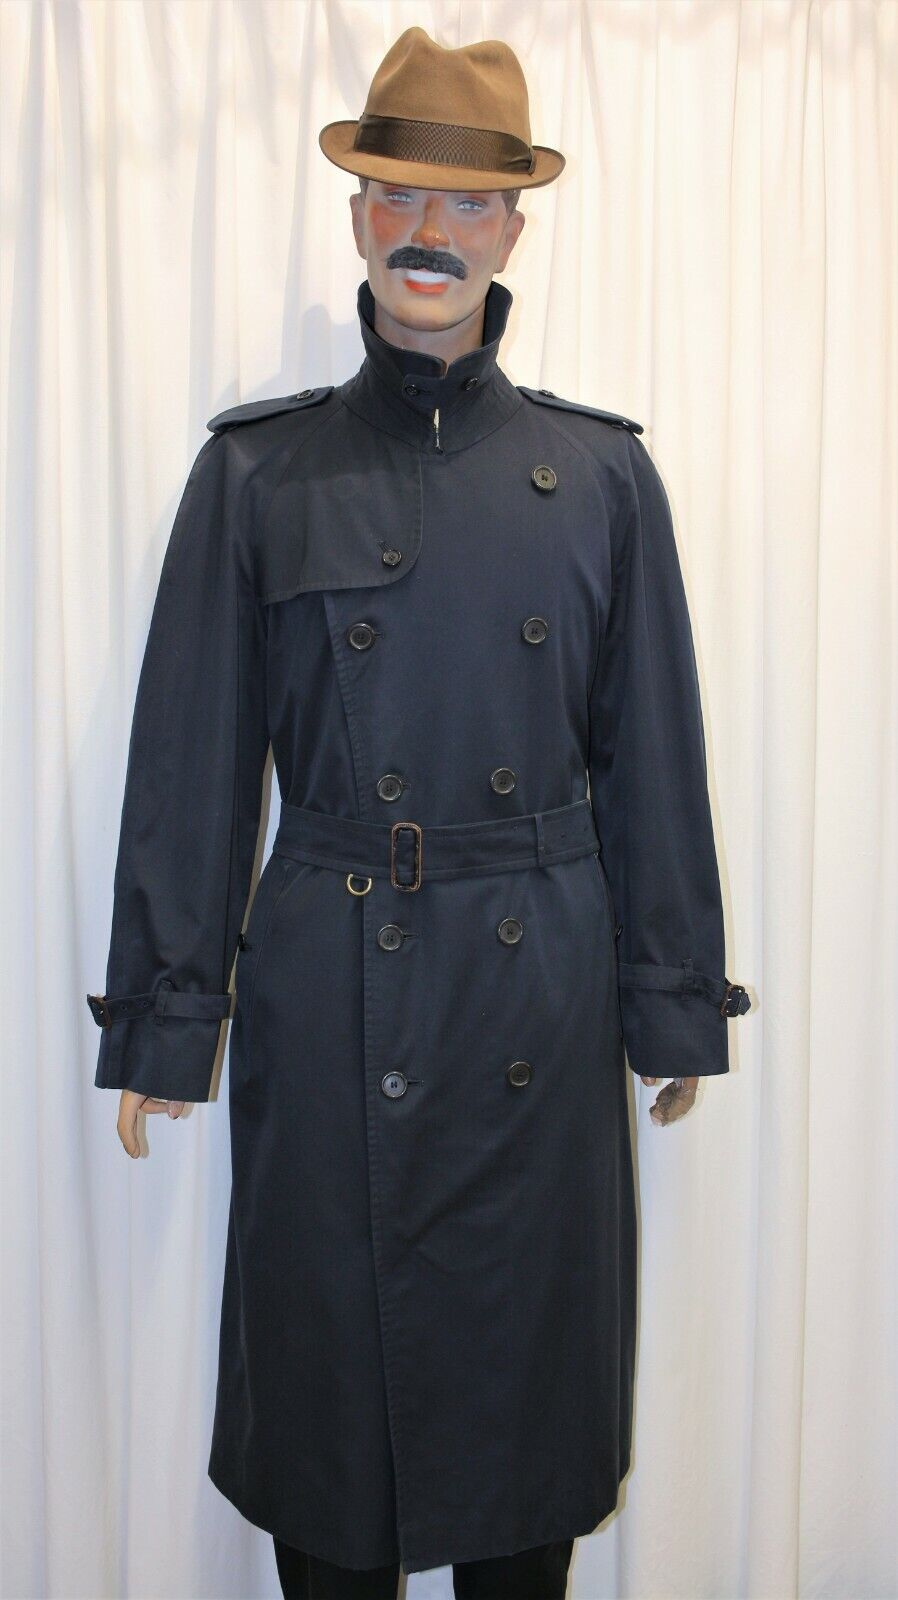 Trench imperméable burberry's homme bleu marine taille 60 l made in england